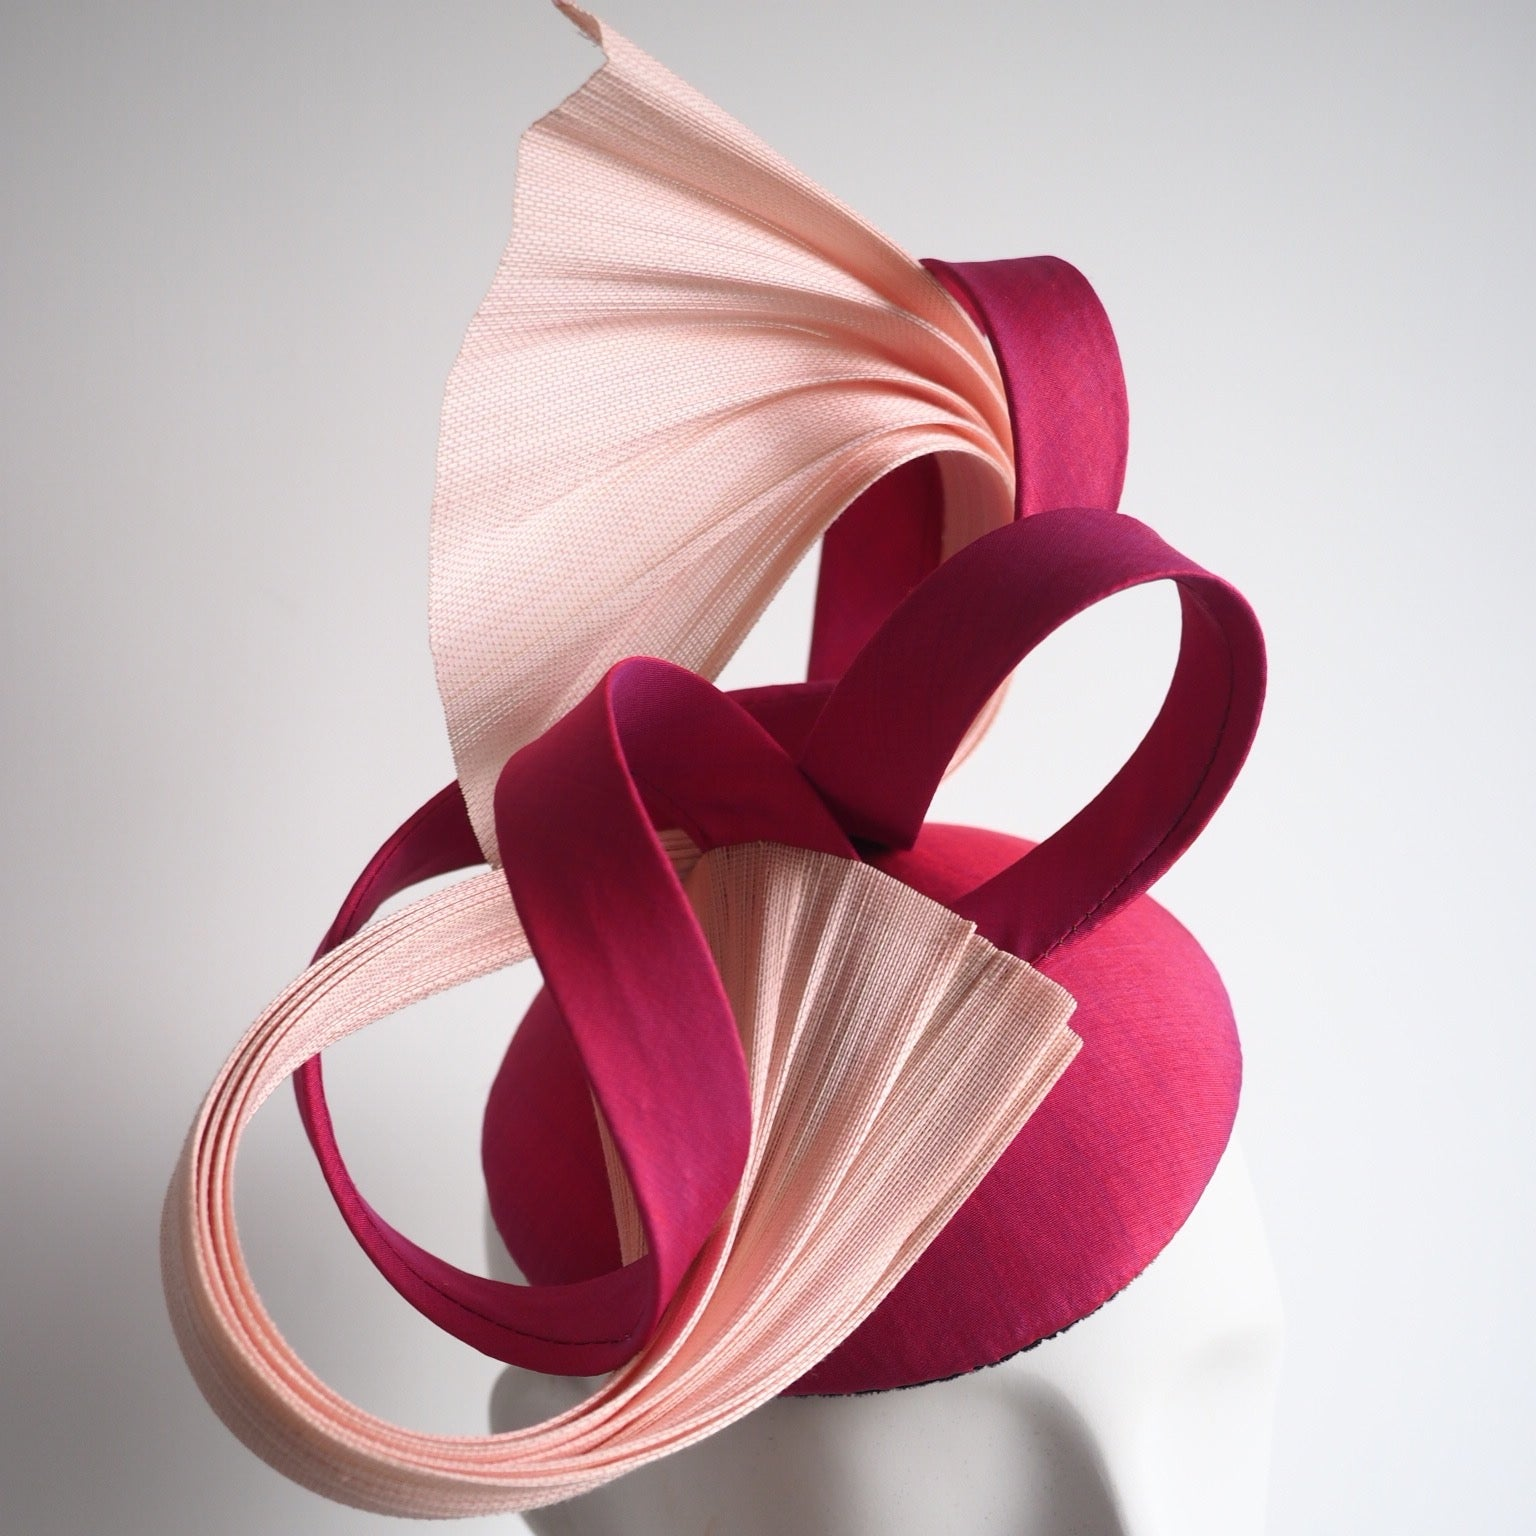 Sasa - Sculpted Designer Headpiece - Custom Made Hats Hong Kong - NOELEEN MILLINERY HONG KONG